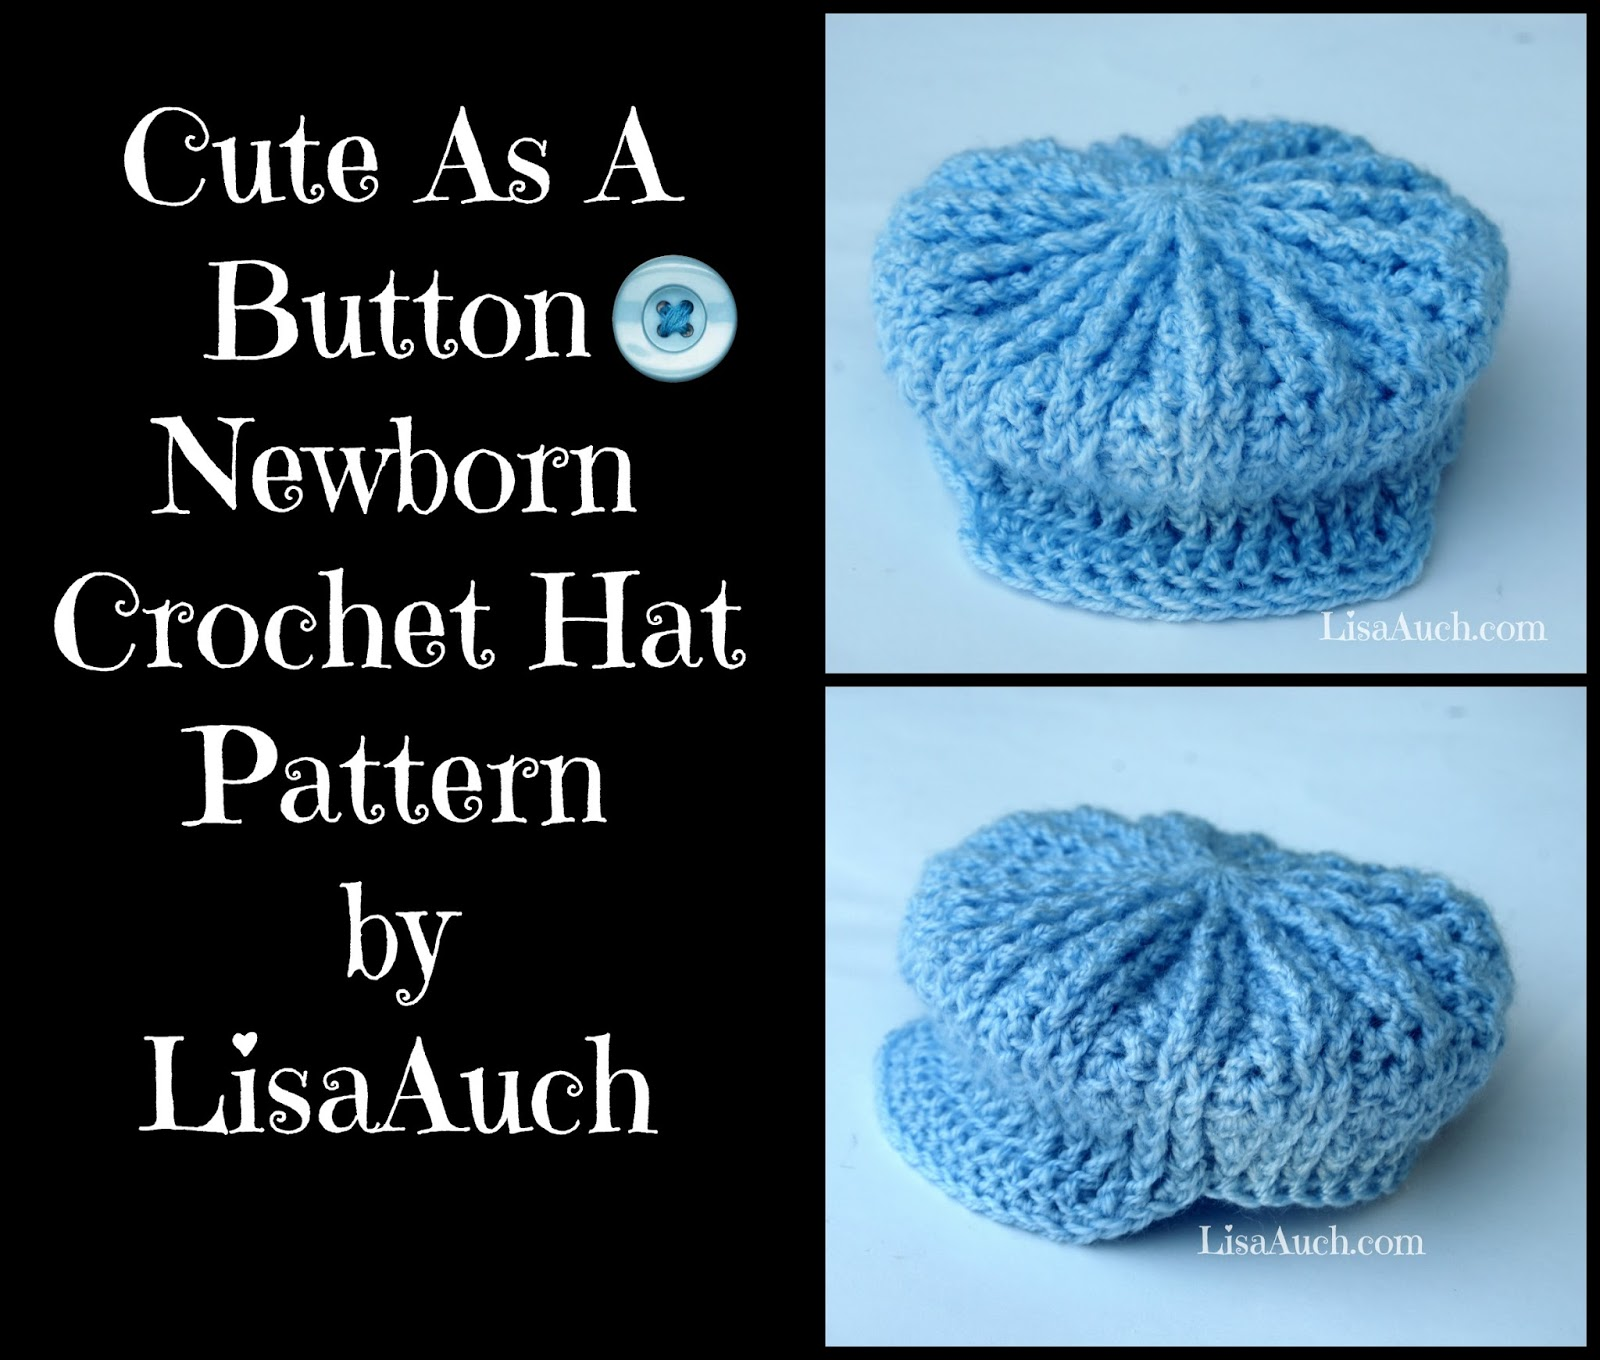 Cute as a button newborn crochet hat pattern free perfect for baby free crochet baby hat pattern free crochet patterns free crochet baby hat pattern newborn cute bankloansurffo Choice Image